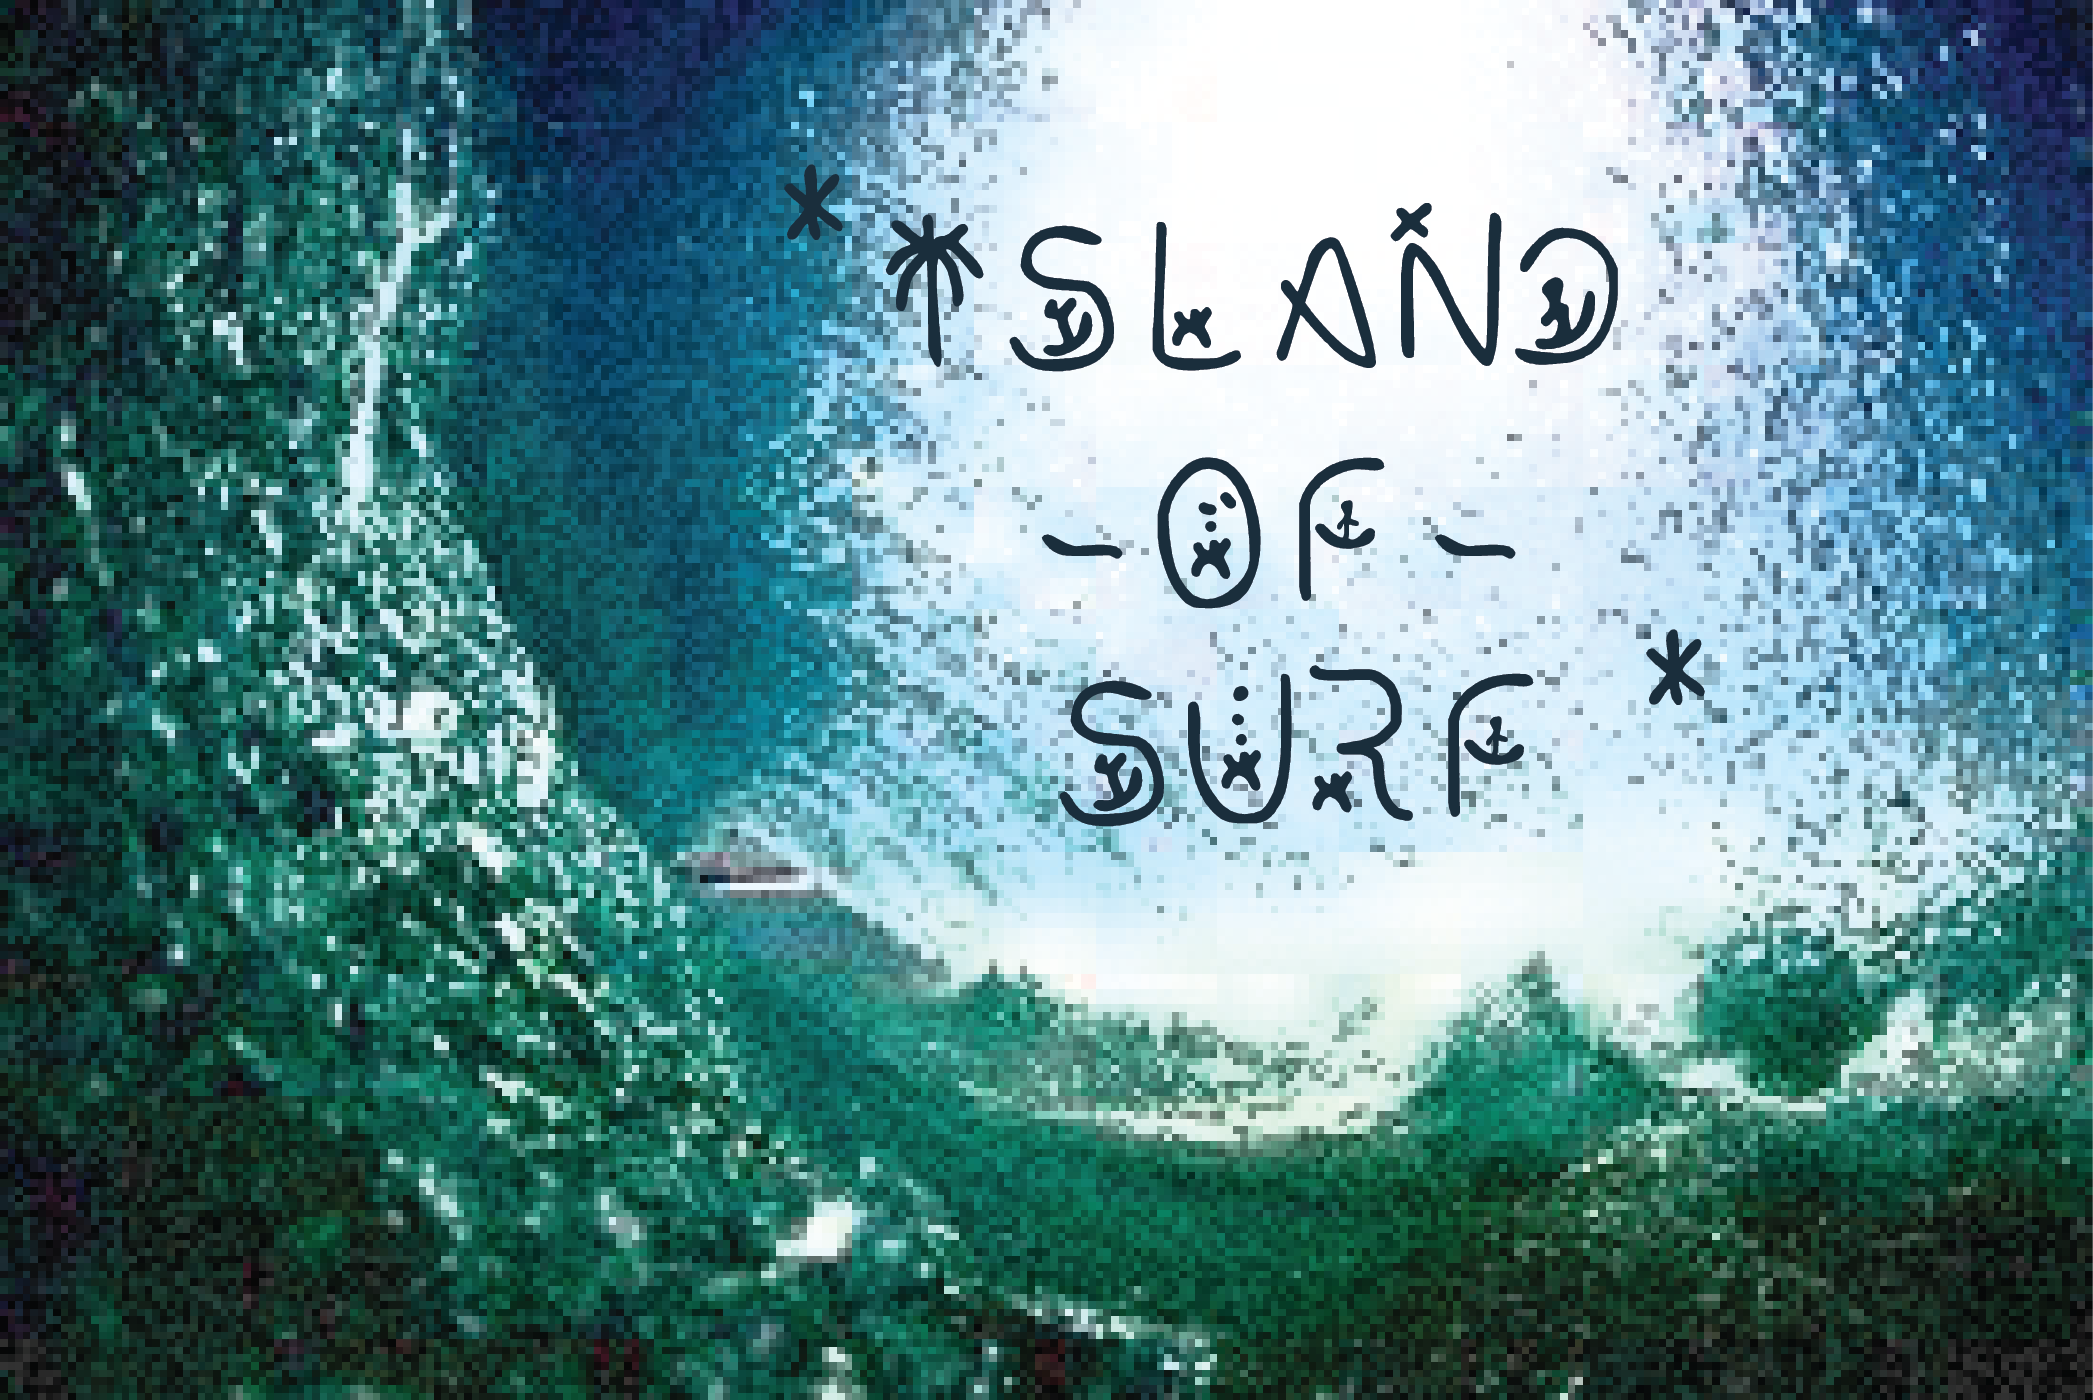 Surfing Of Waves Font